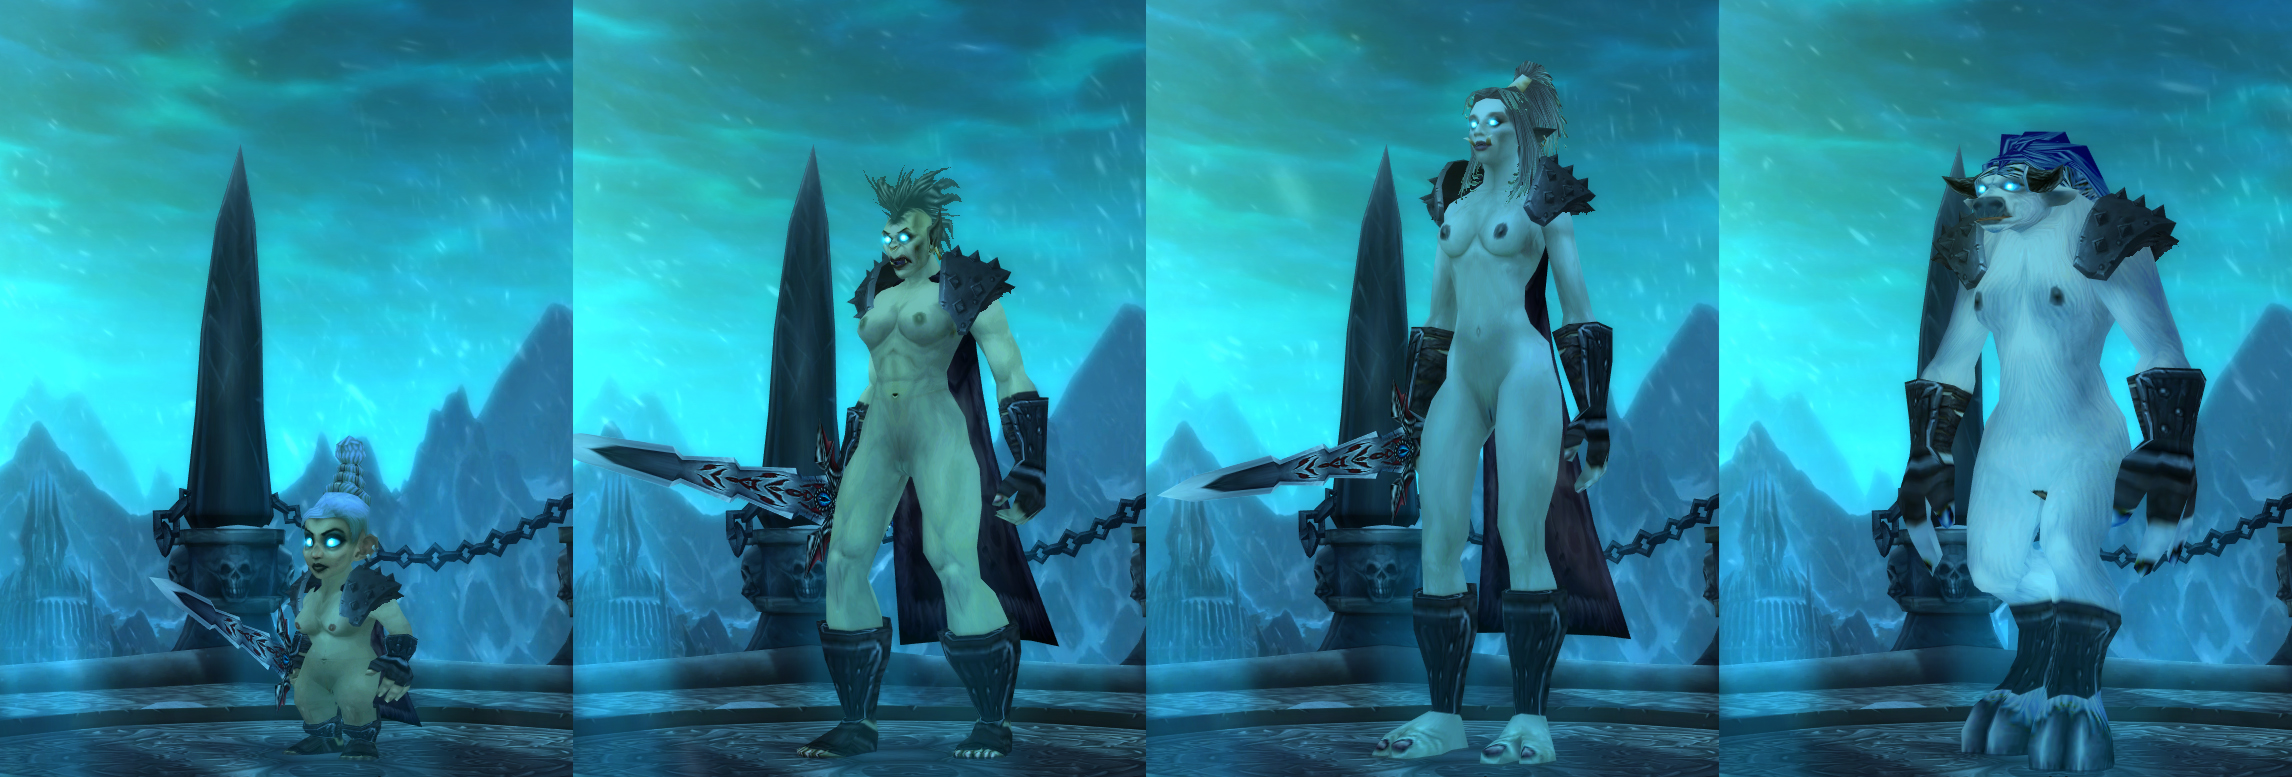 Wow in game characters naked mod naked photo